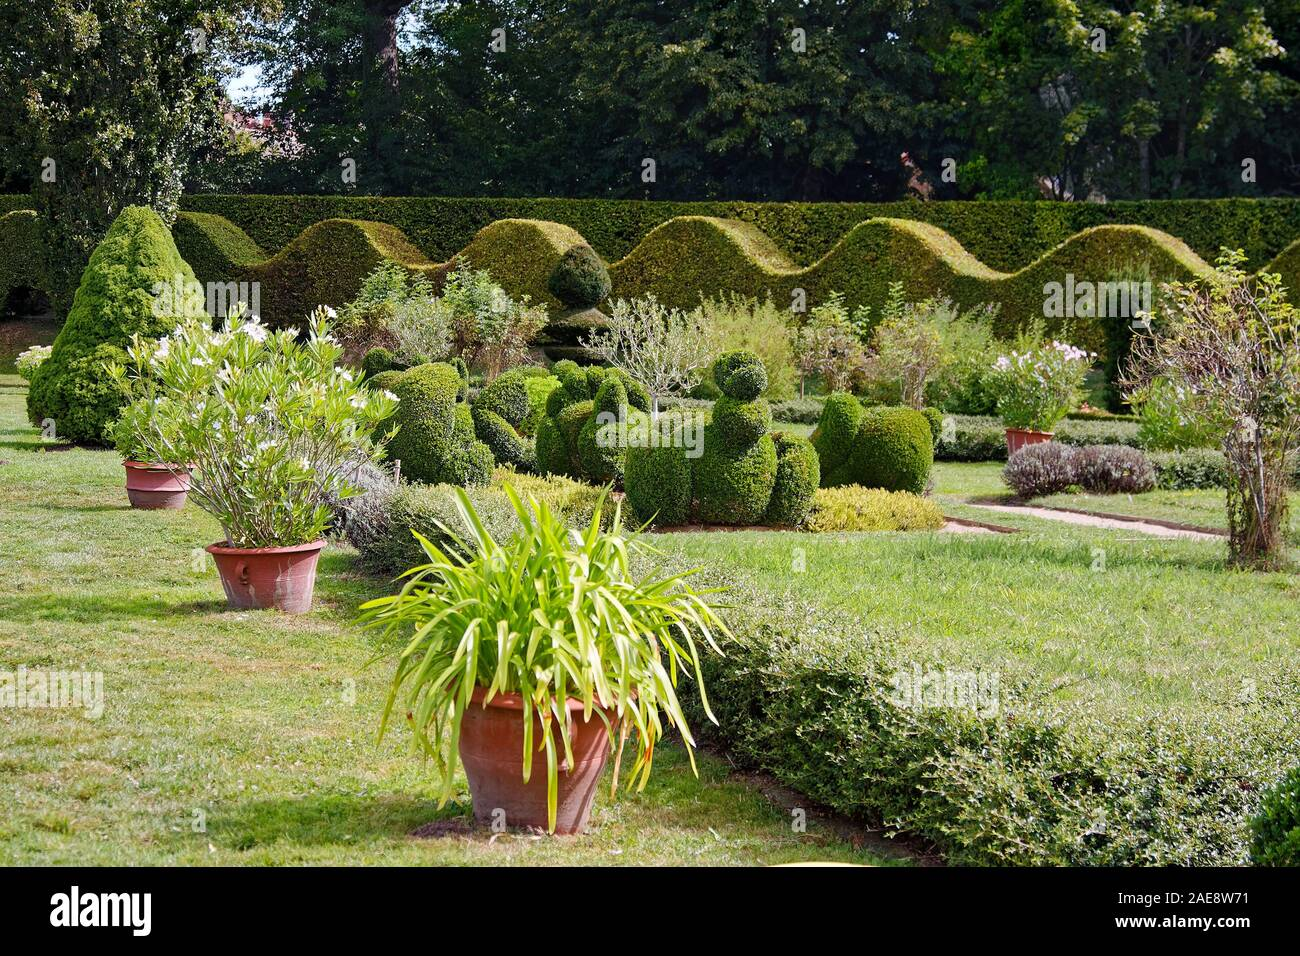 Garden Scene Grass Flowers Shrubs Potted Plants Topiaries